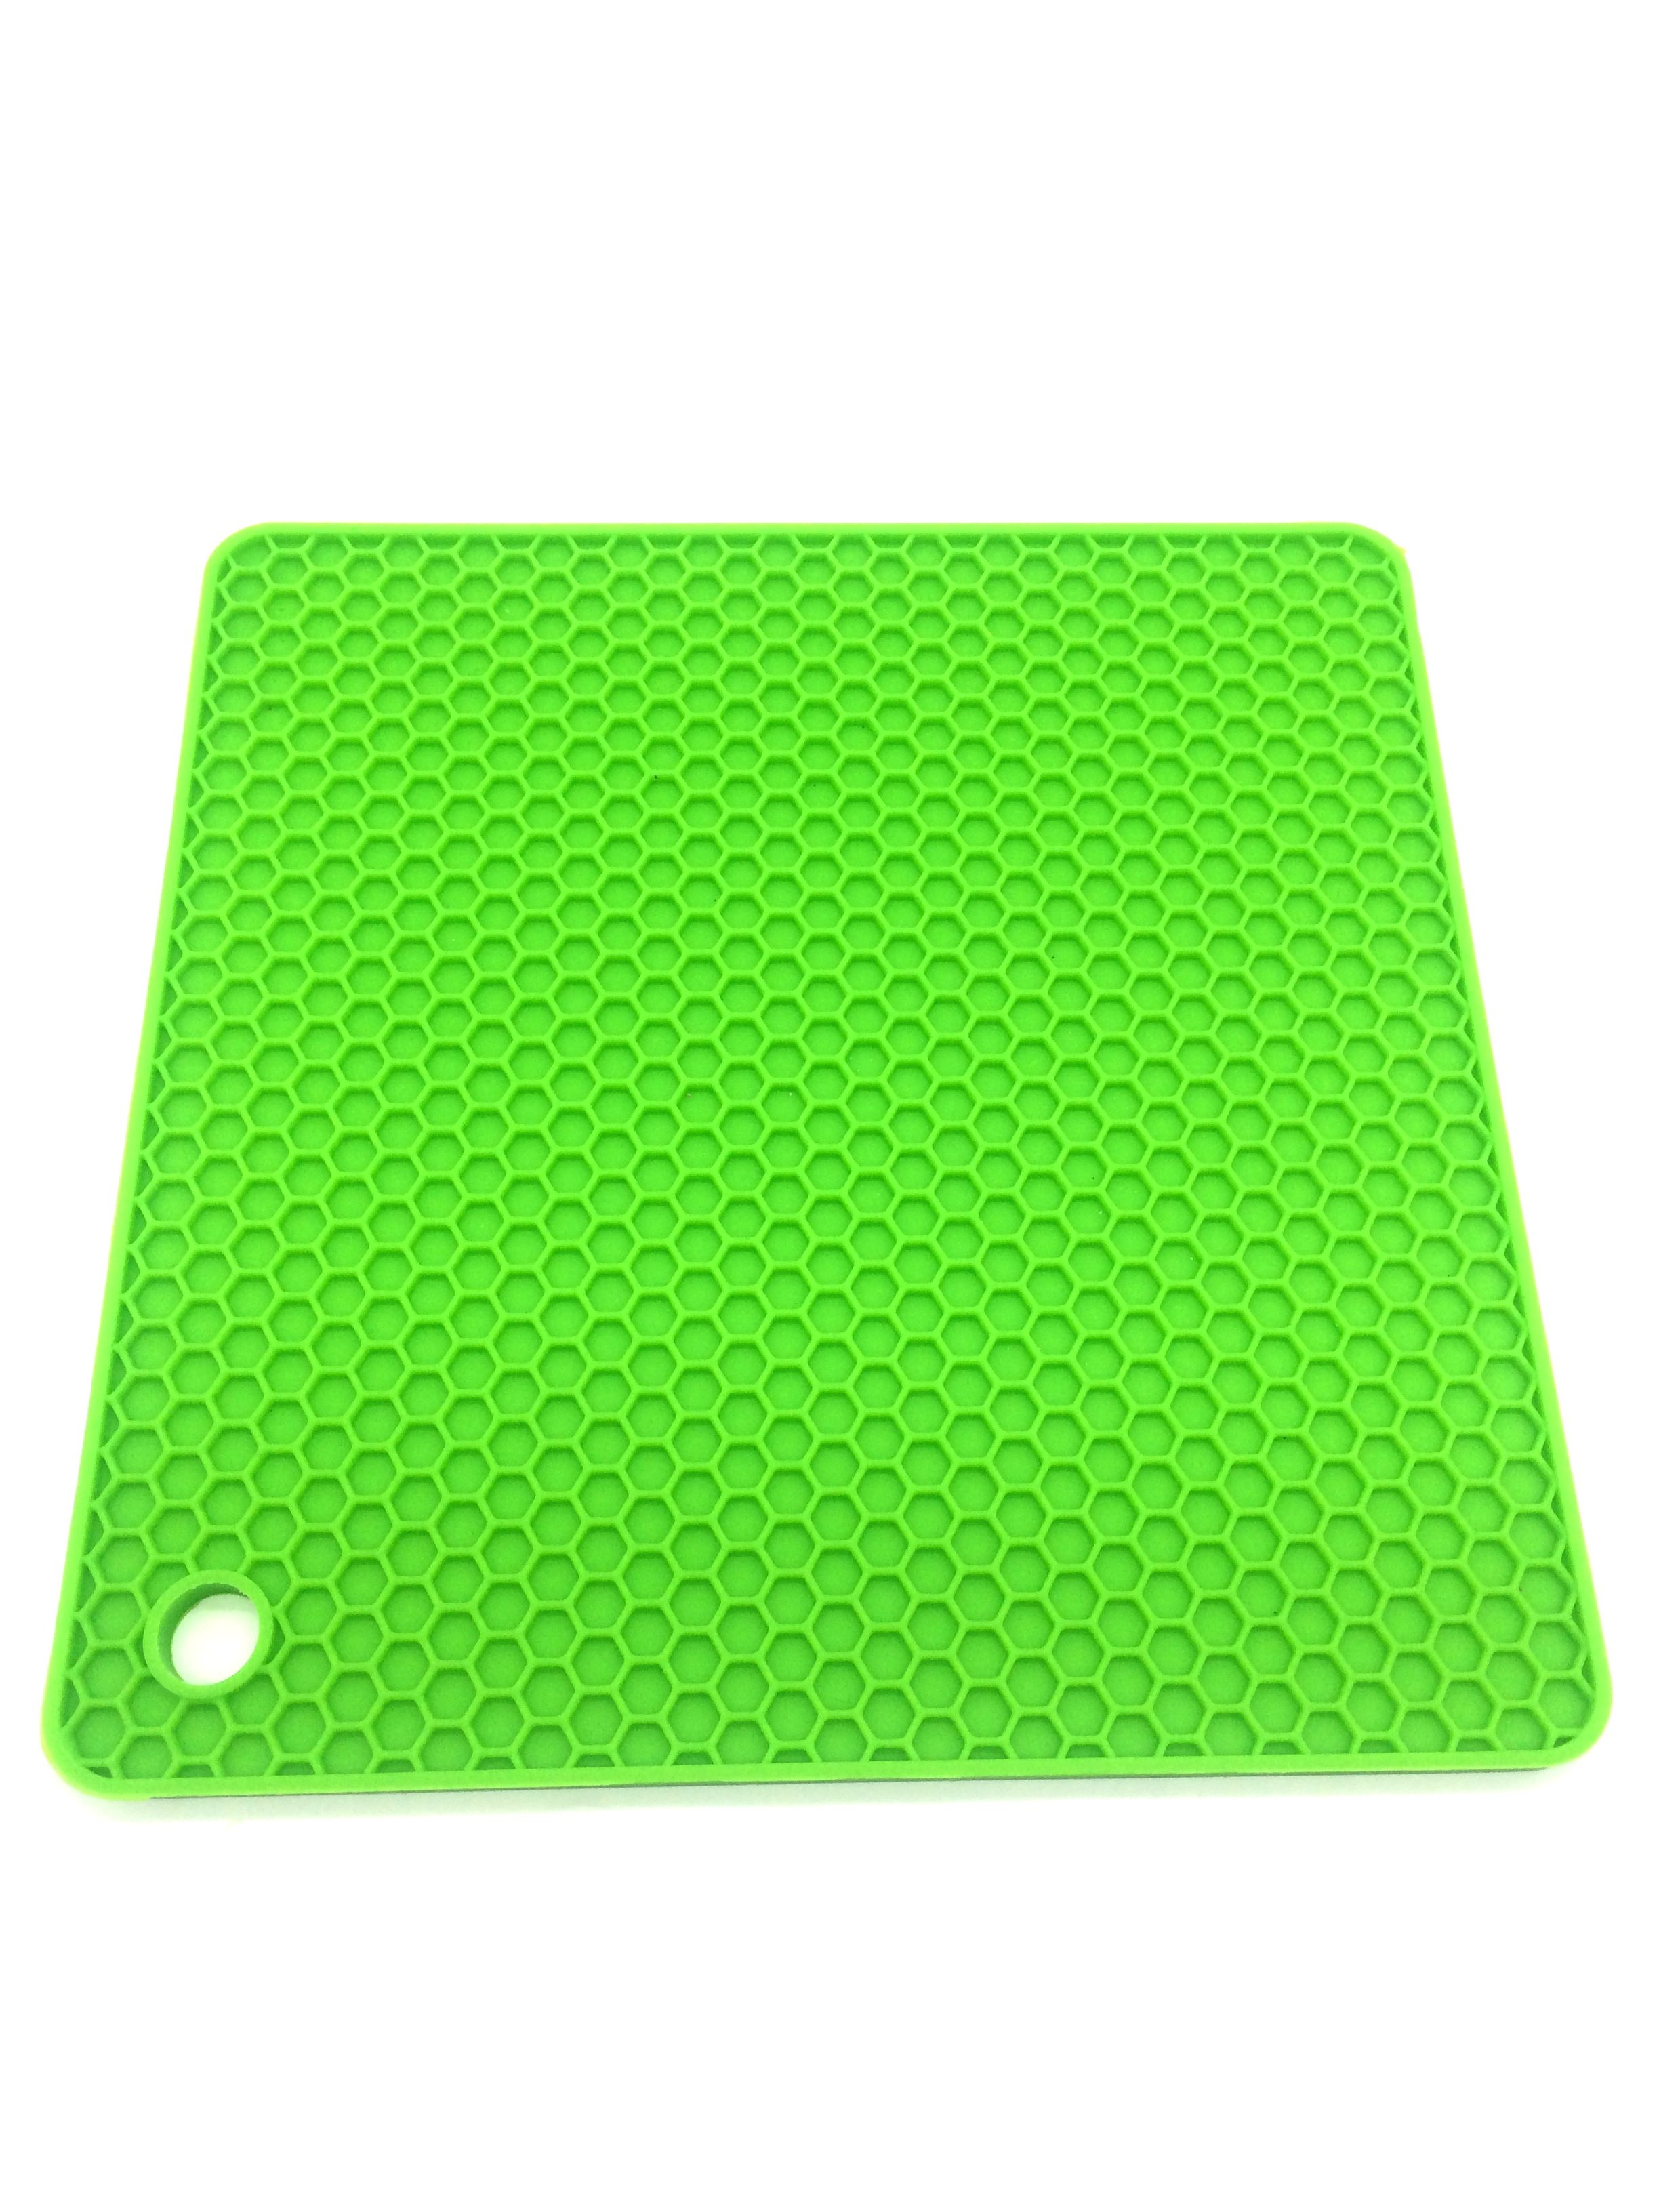 pictures eefc heat dining resistant hd room tableheat mat with for concept mats table